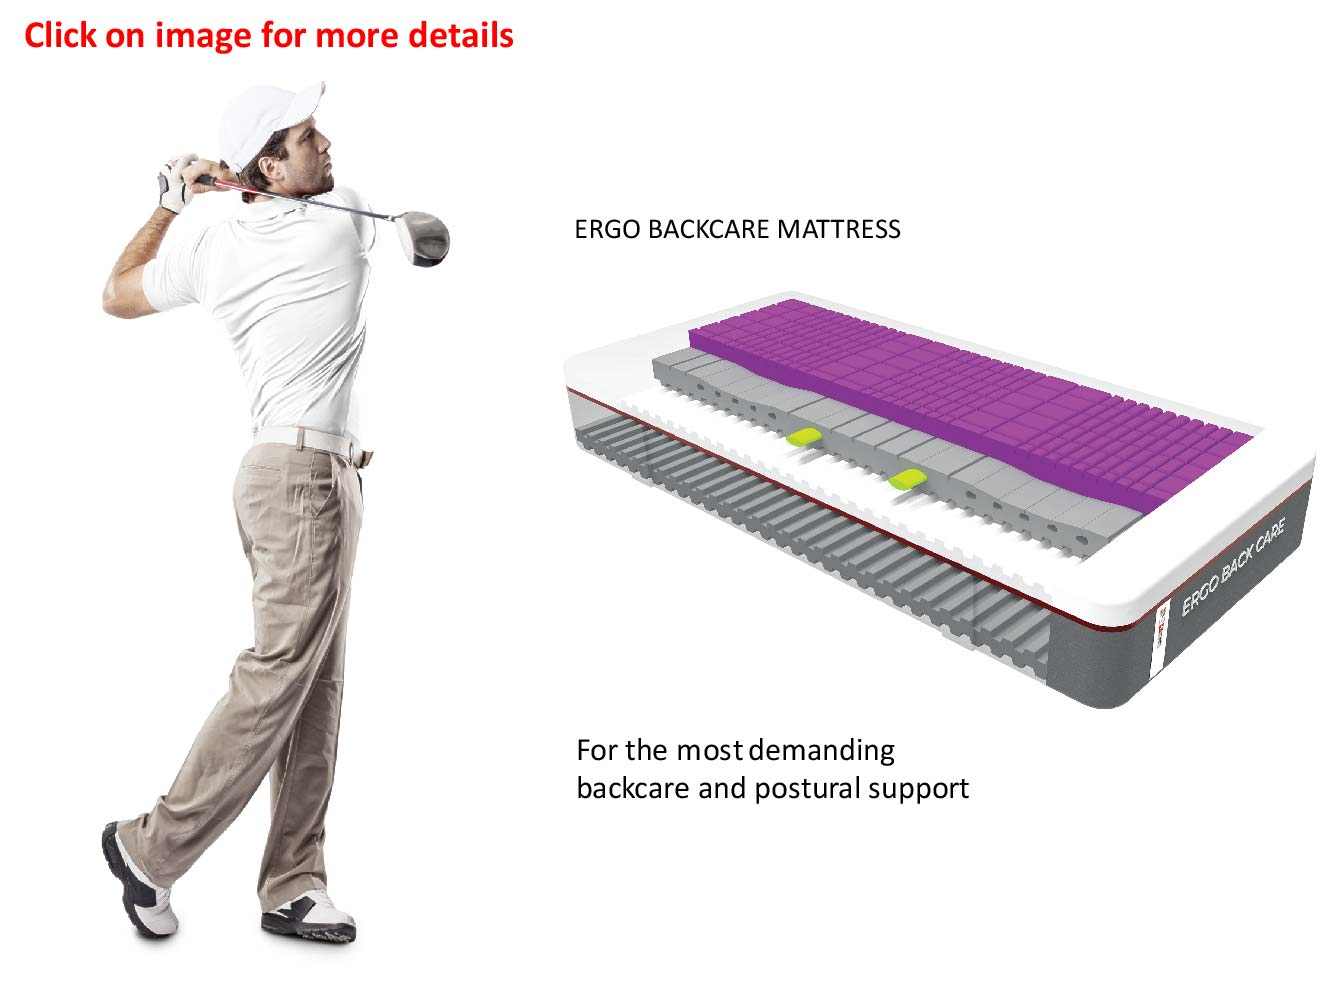 Swissaire True Ergonomics - ergo backcare mattress